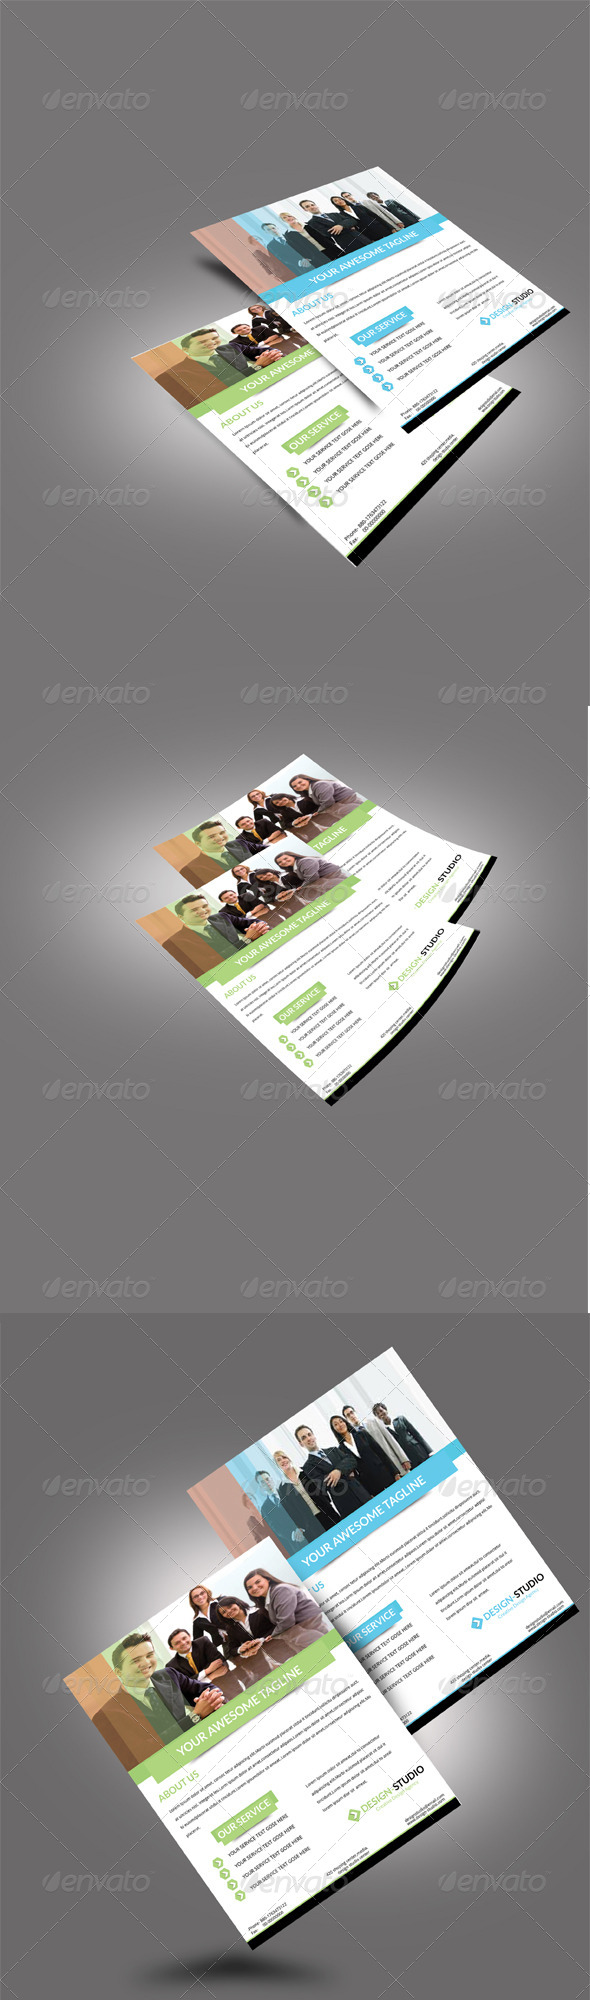 GraphicRiver Flyer Resumes Mock-ups Template V1 7606153